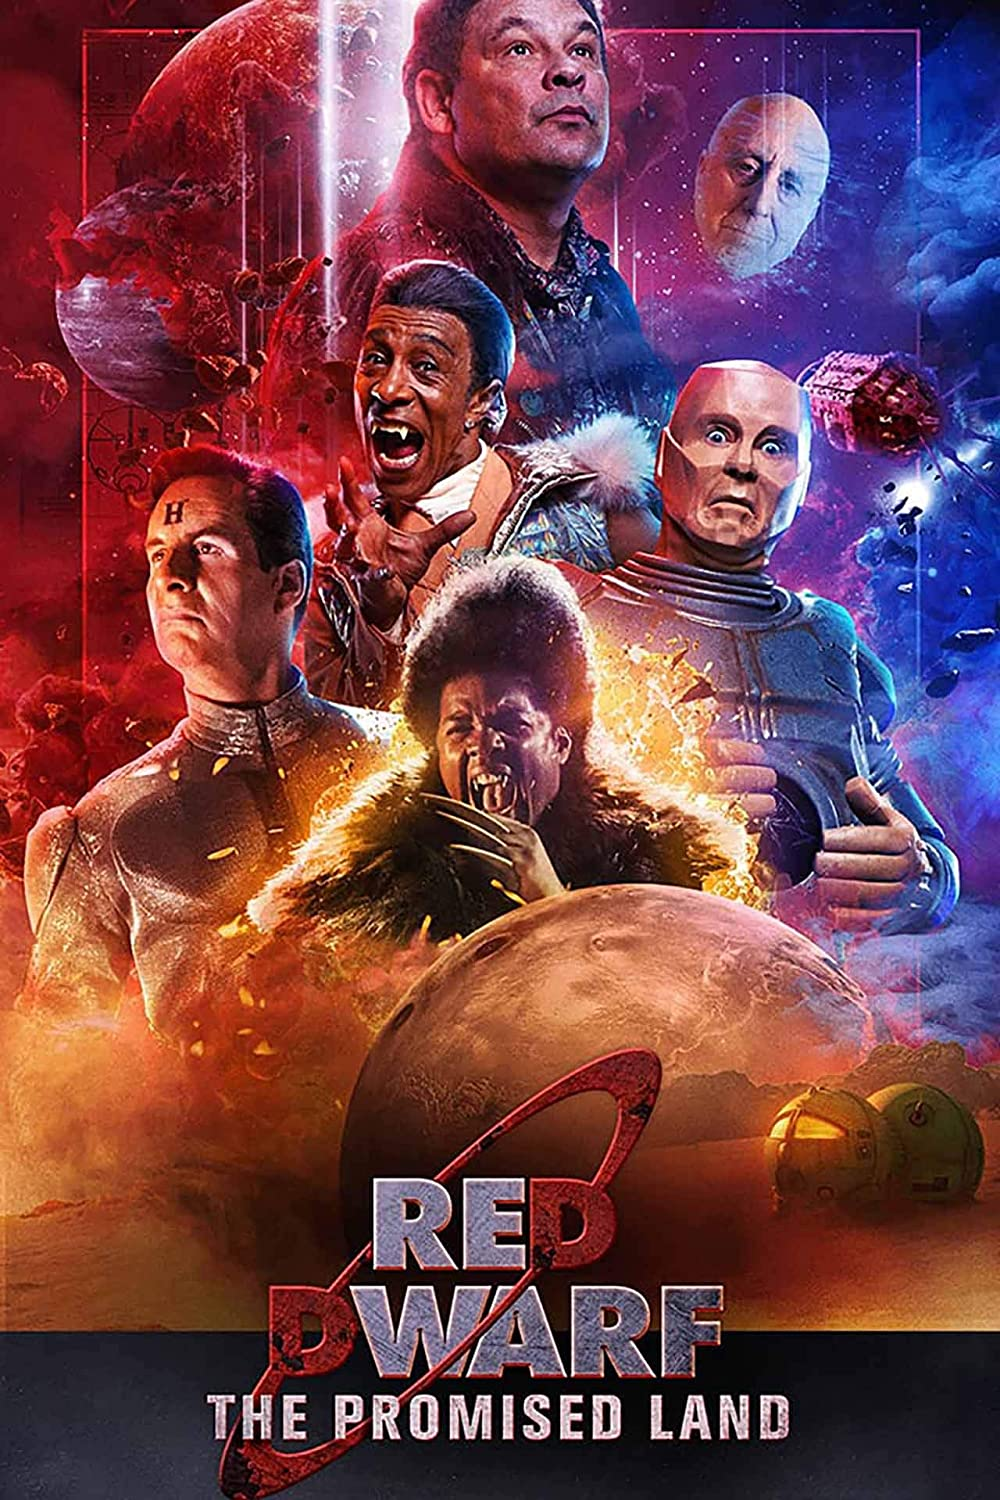 Red Dwarf DVD Series 13: The Promised Land